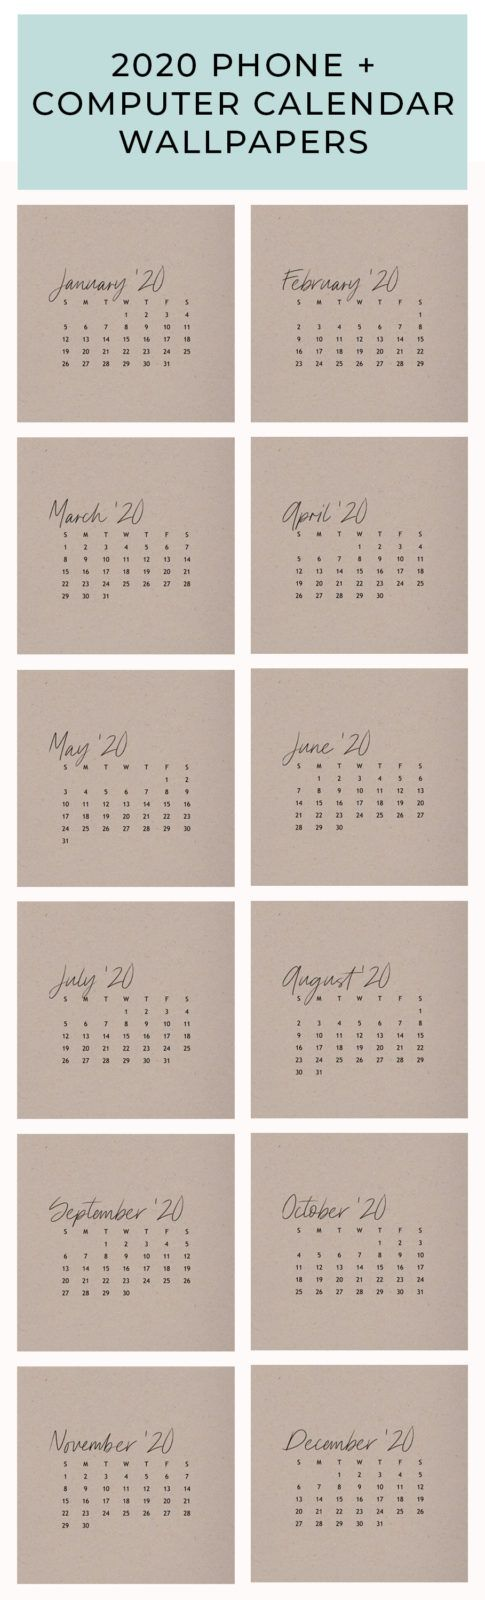 Free 2020 Calendar Wallpapers for your Phone + Desktop PLUS free printable 2020 Calendars   by Thyme is Honey